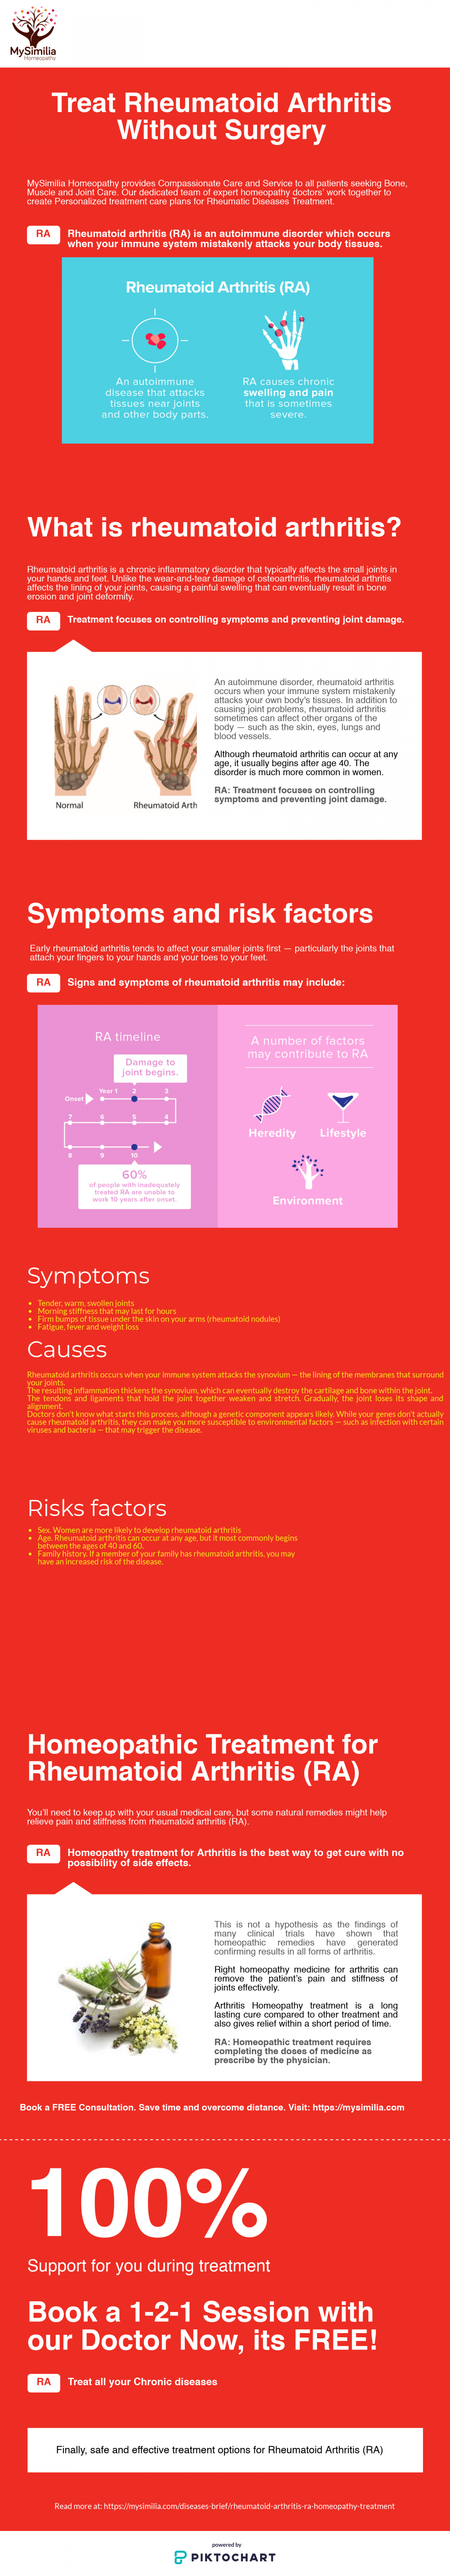 All About Rheumatoid Arthritis (RA) by My Similia Homeopathy Infographic